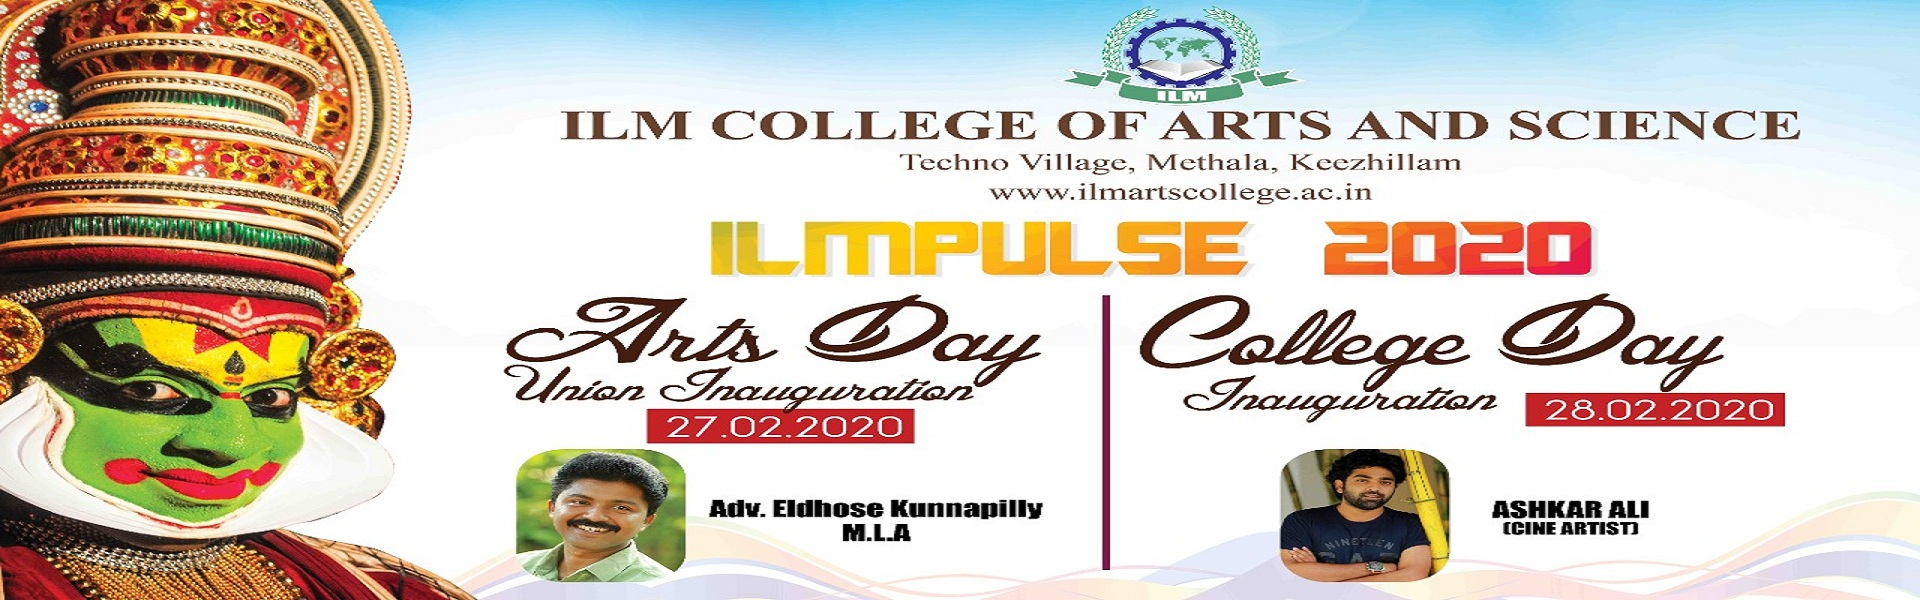 ilm arts college